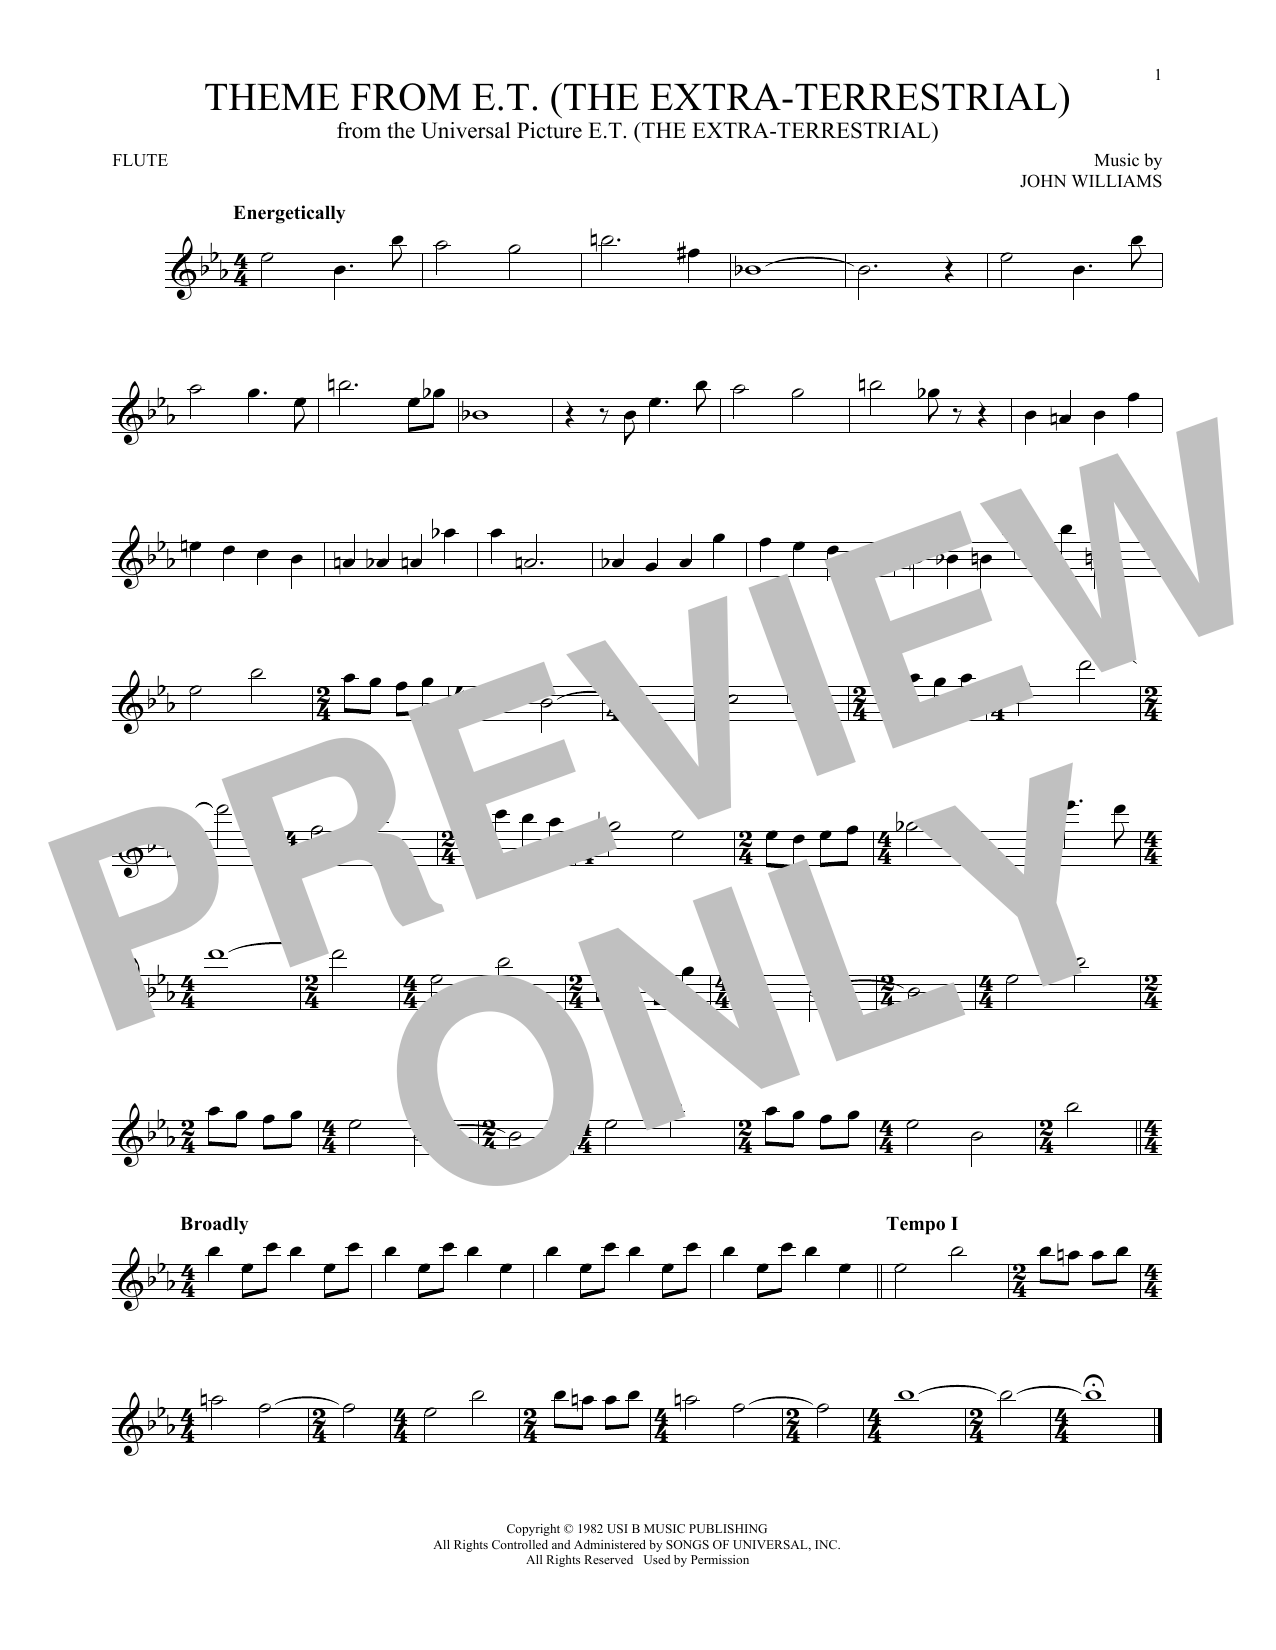 Theme From E.T. (The Extra-Terrestrial) (Flute Solo)